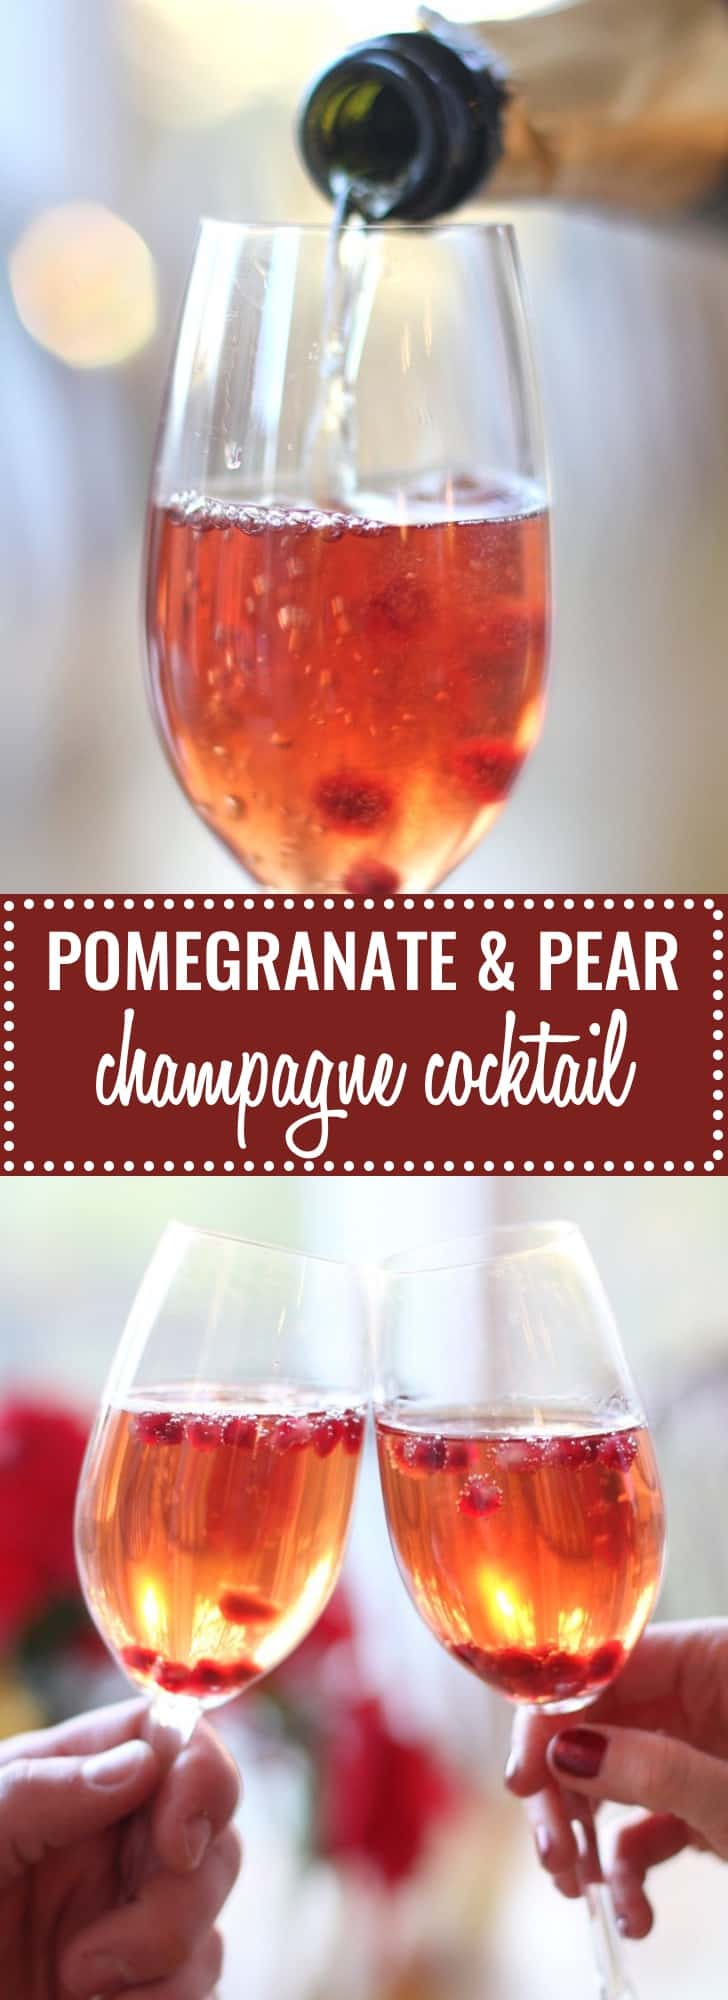 Delightfully fun and festive, this champagne cocktail uses pear liquor and fresh pomegranate seeds that dance in the tiny bubbles!